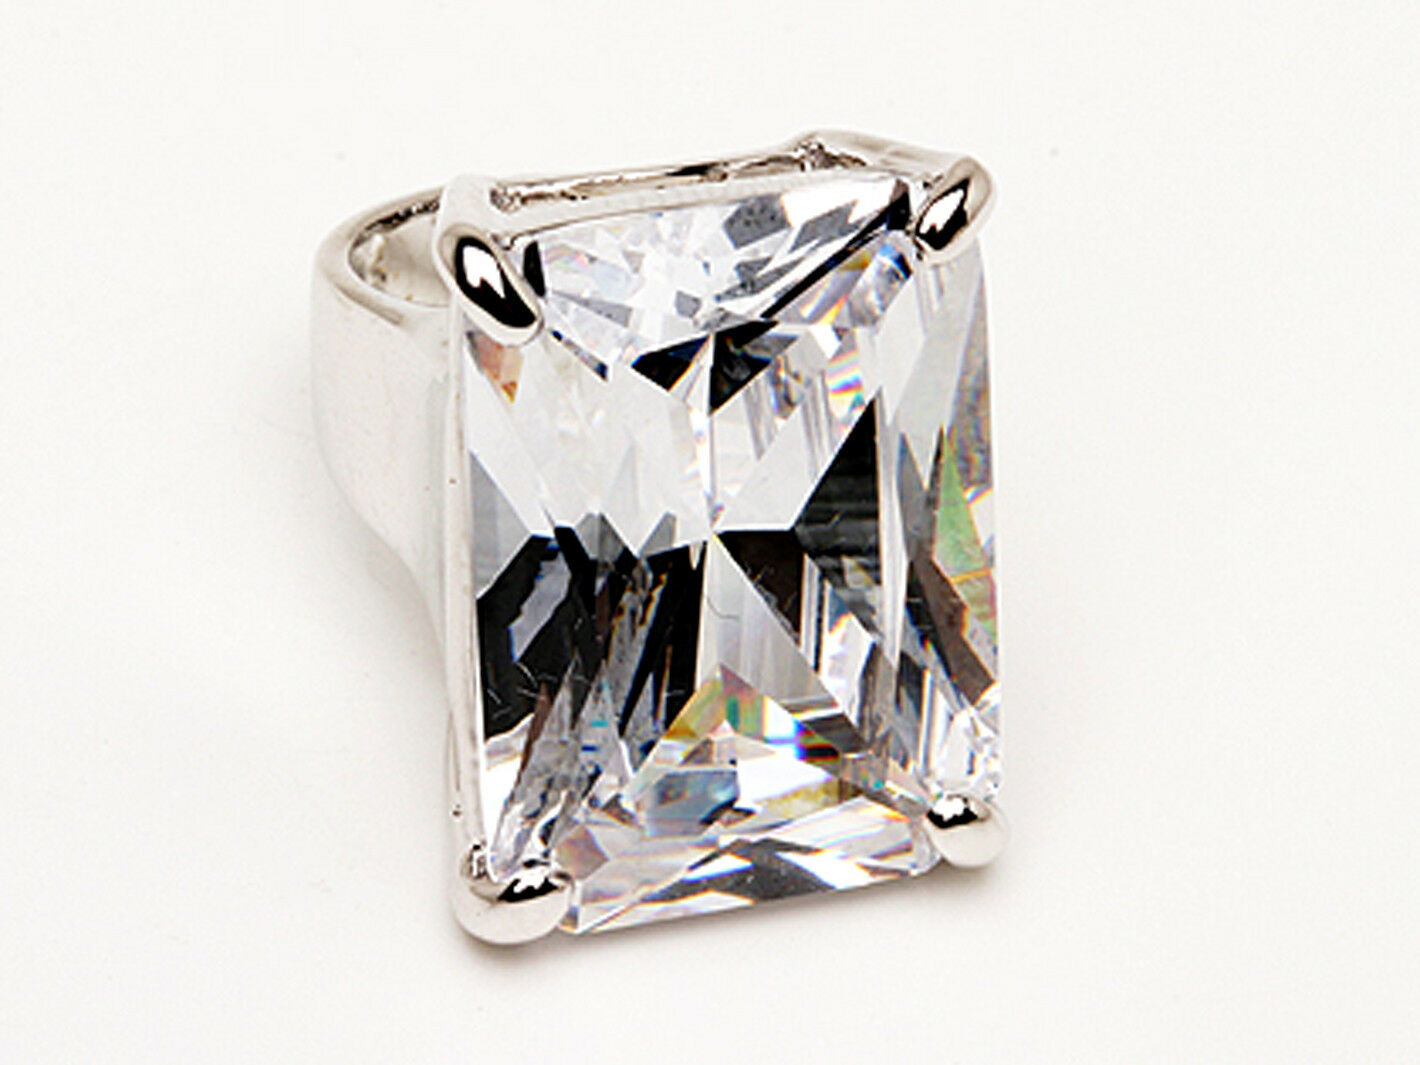 Huge 45ct Clear Cubic Zirconia Rhodium Plated Bling Bling Ring SZ 6 or 8